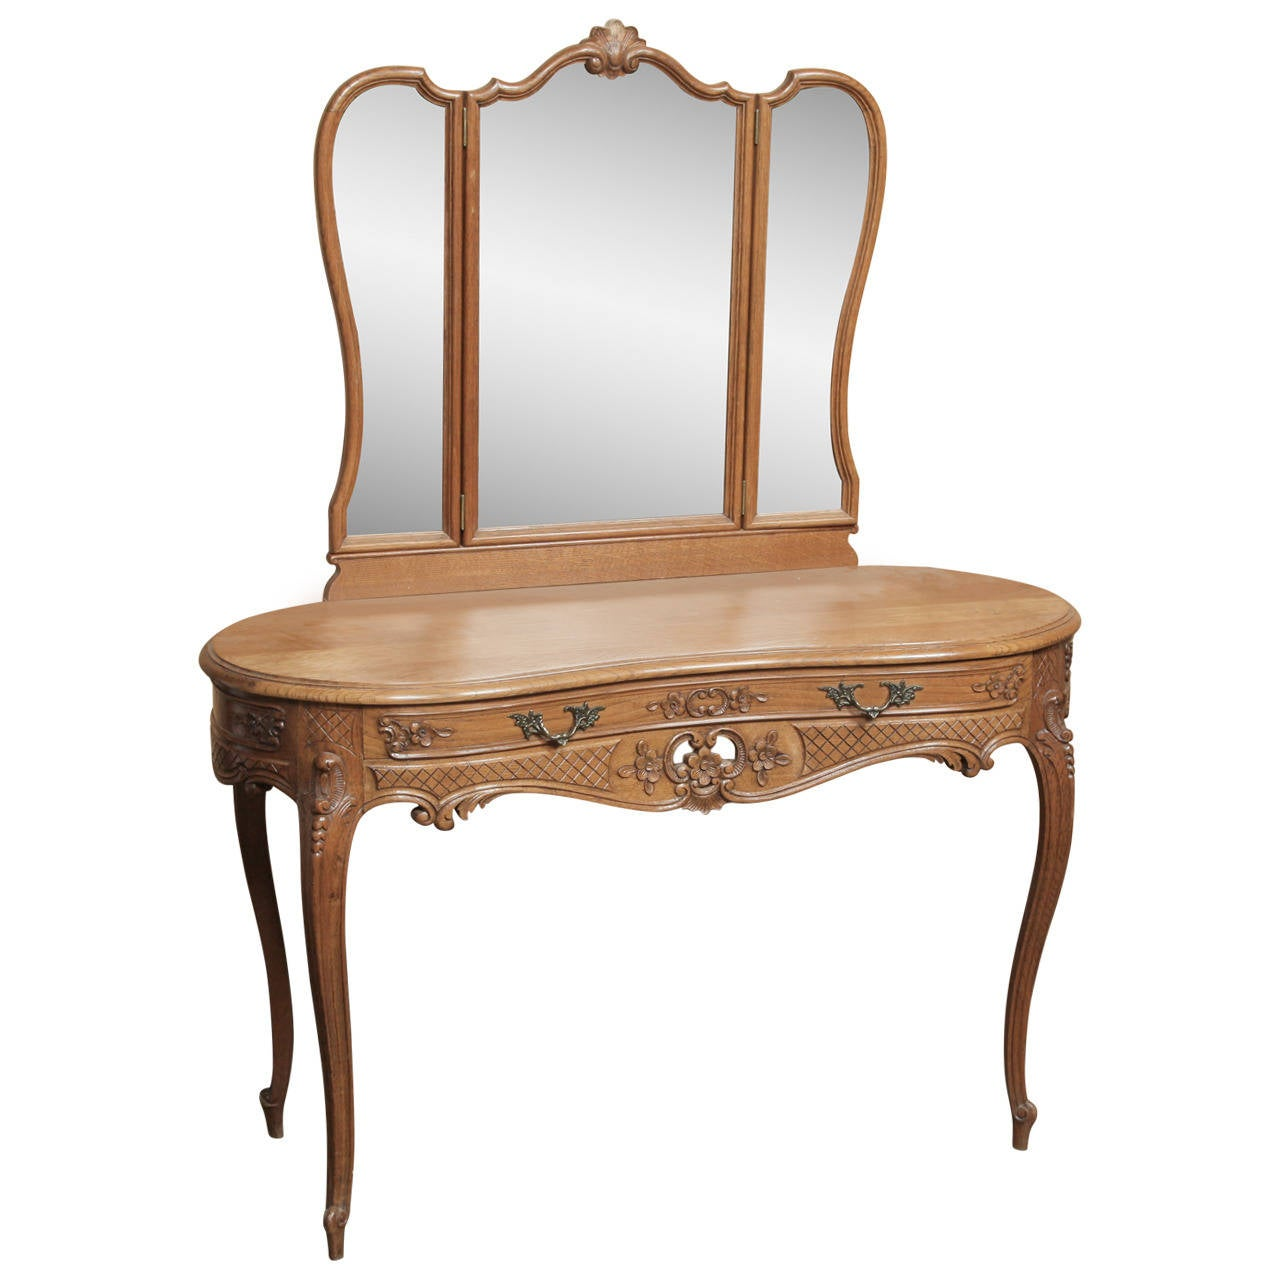 Vintage Country French Vanity at 1stdibs : 2245932l from www.1stdibs.com size 1280 x 1280 jpeg 90kB